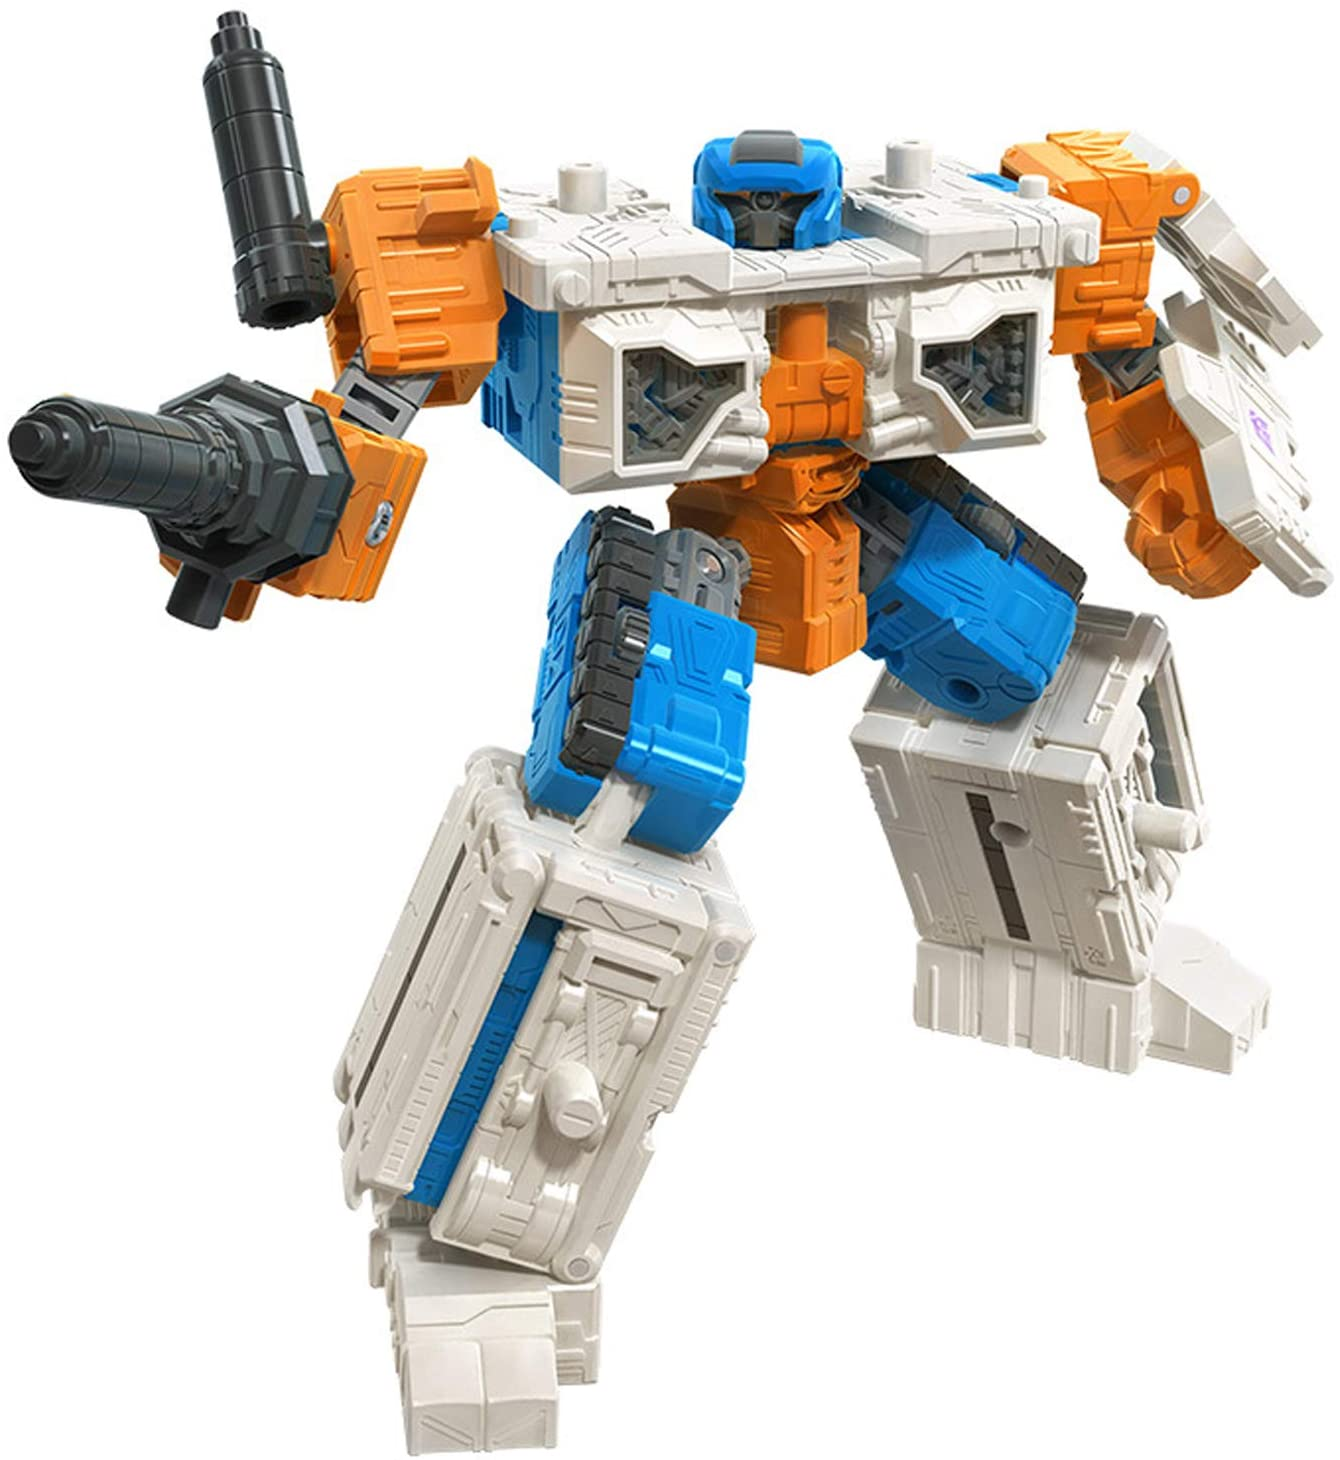 Transformers Generations Earthrise War for Cybertron Deluxe Airwave